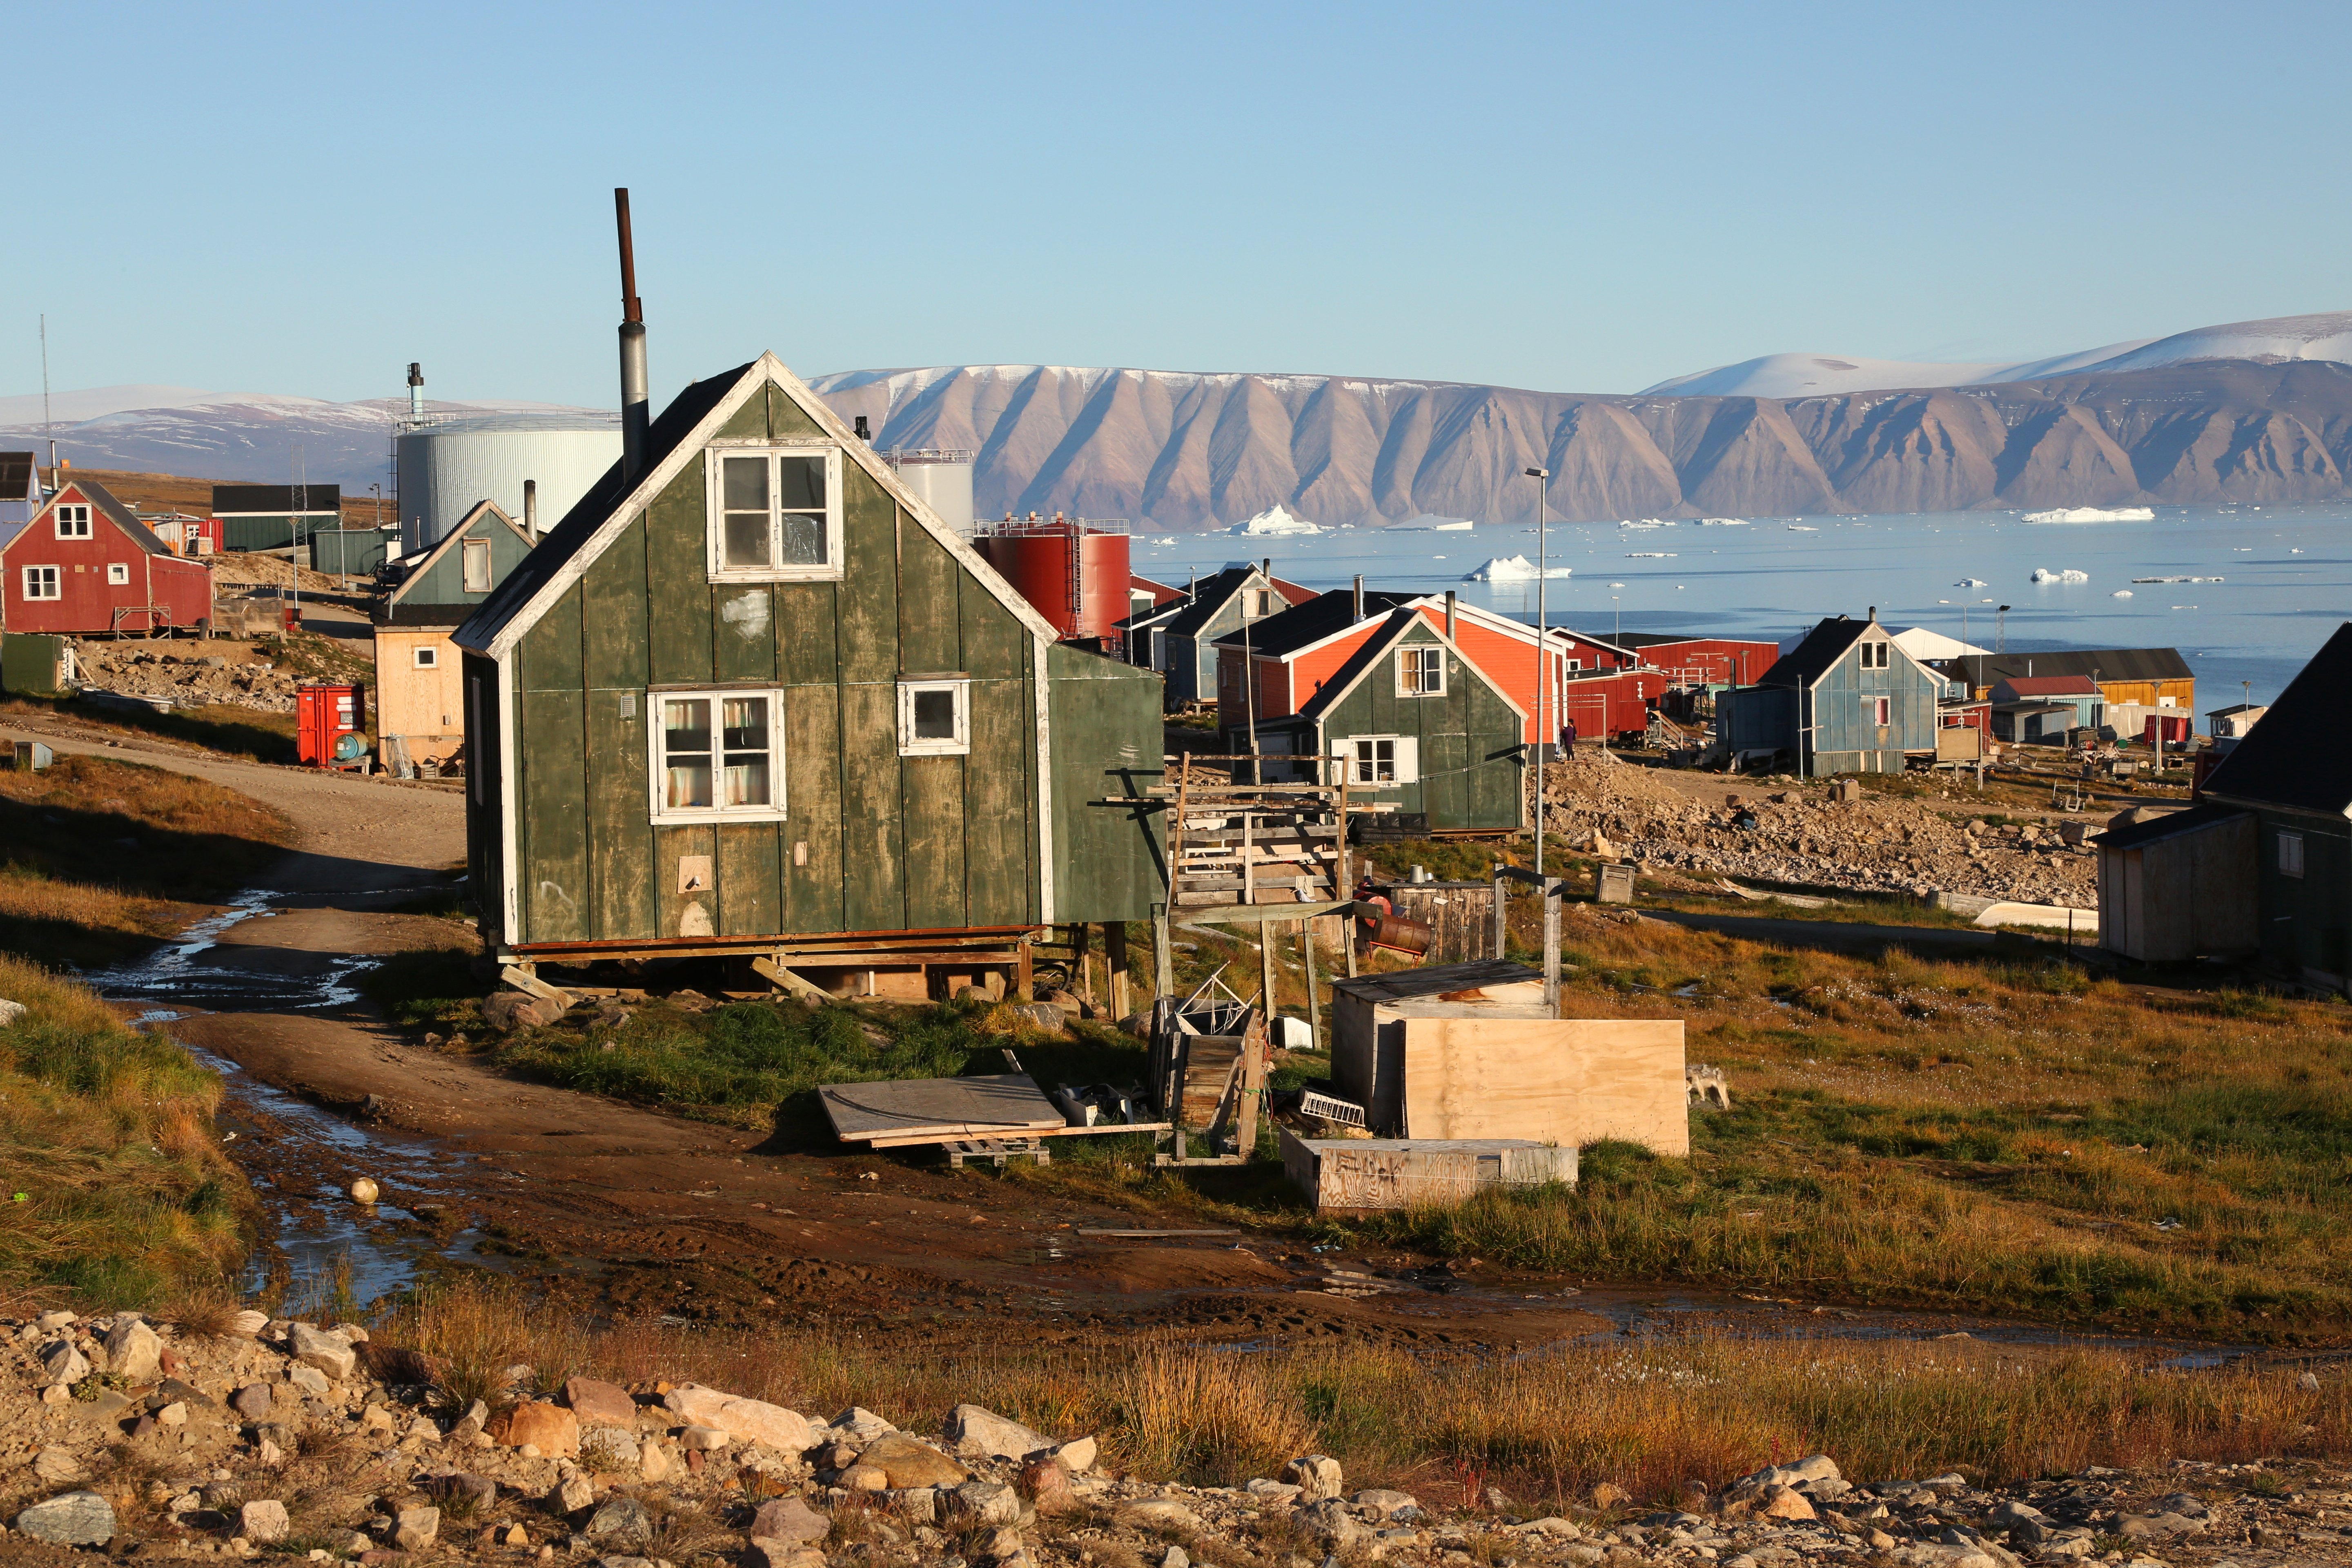 A way of life is melting away in Greenland